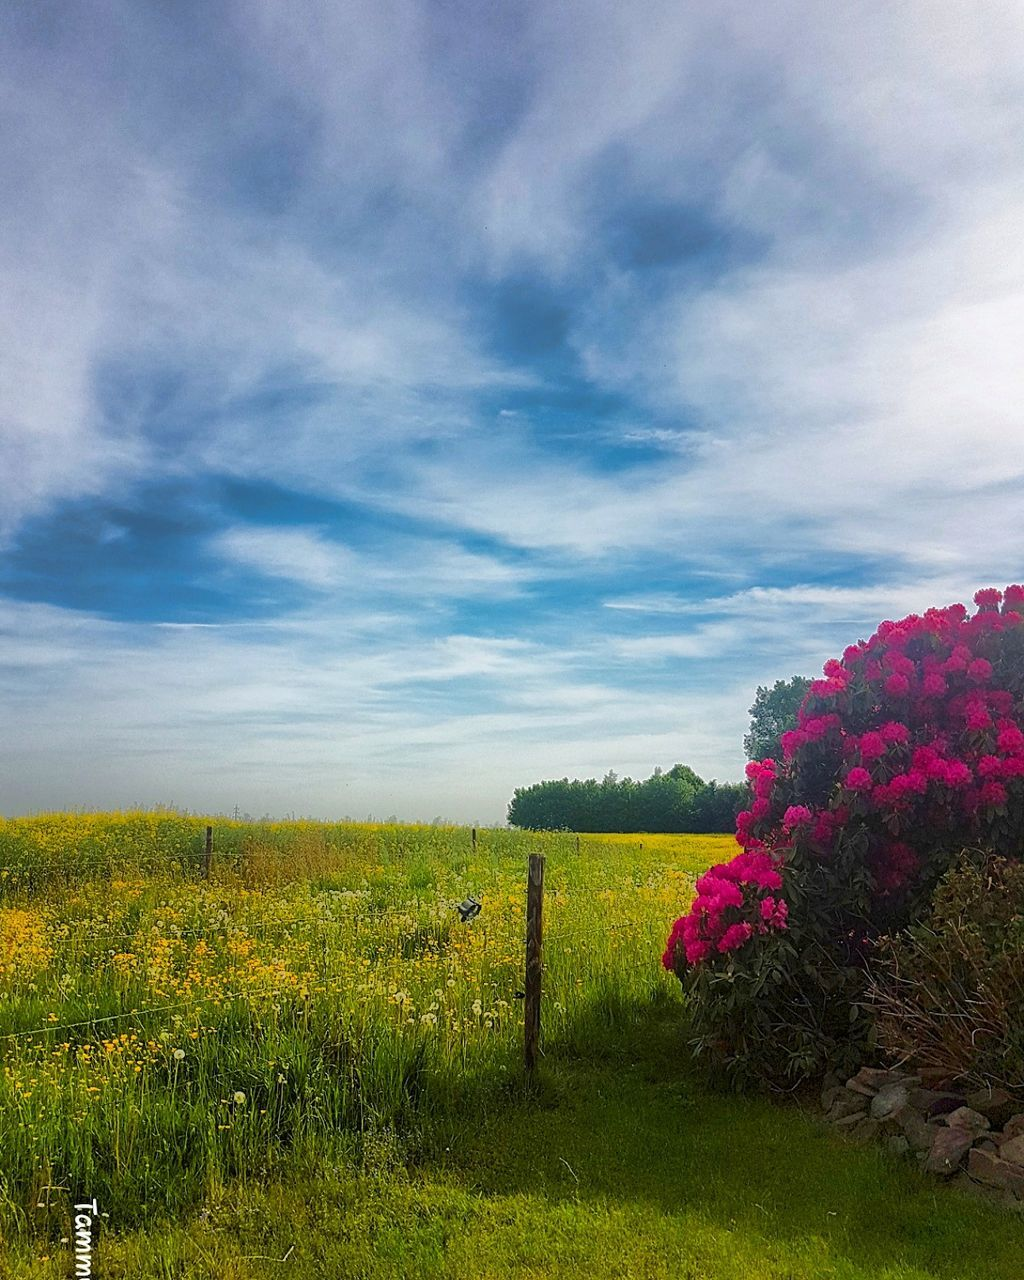 nature, beauty in nature, growth, sky, flower, tranquility, cloud - sky, no people, field, tranquil scene, scenics, plant, day, outdoors, landscape, grass, tree, fragility, freshness